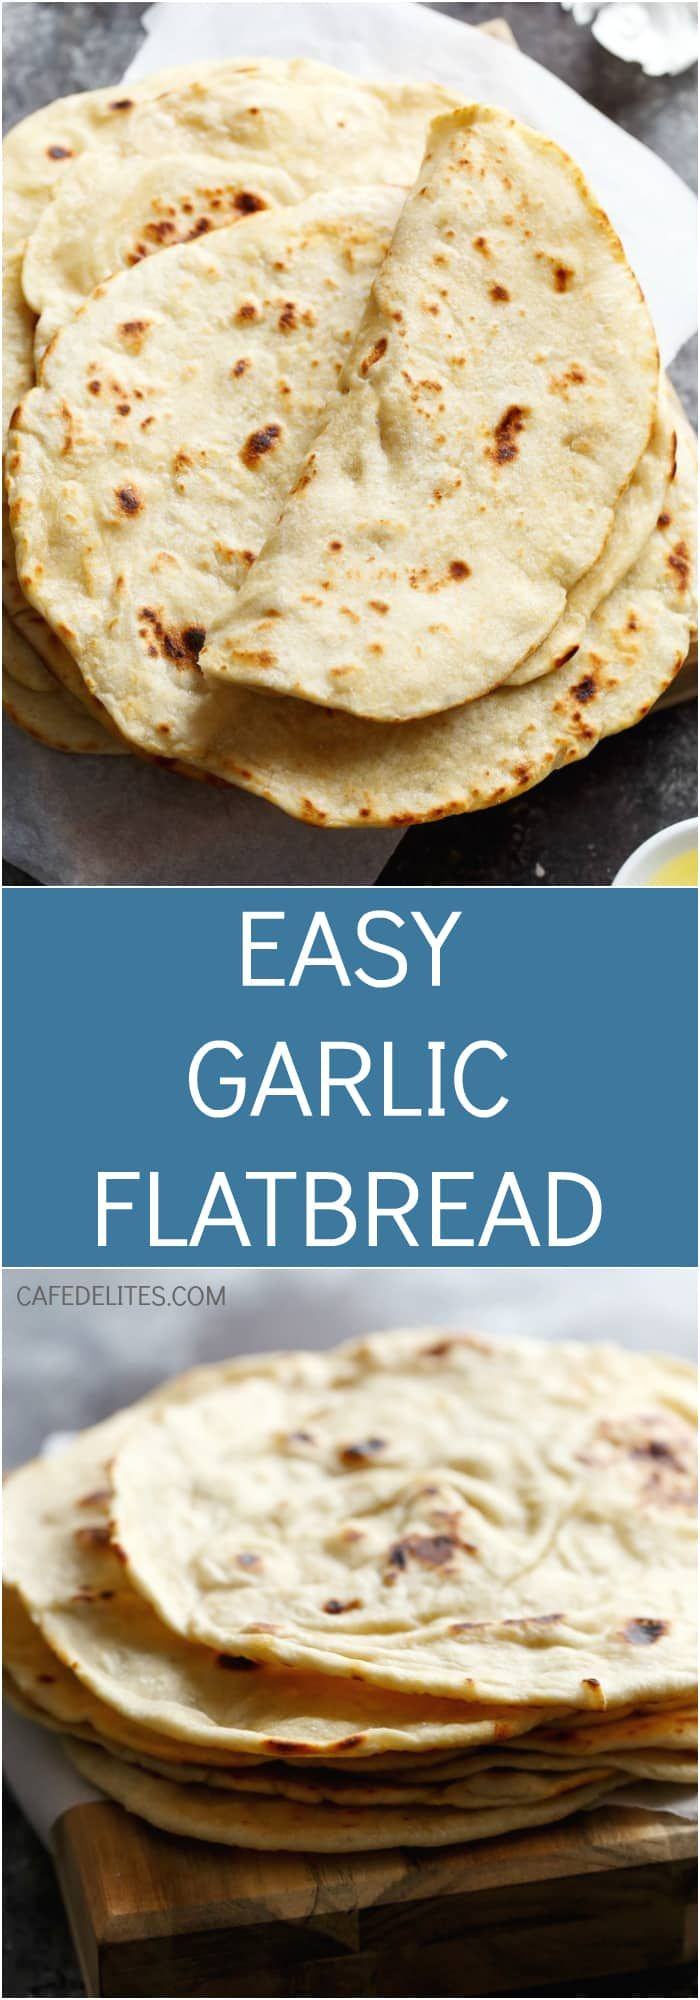 An incredibly easy flatbread recipe with a subtle kick of garlic for extra flavour! | https://cafedelites.com